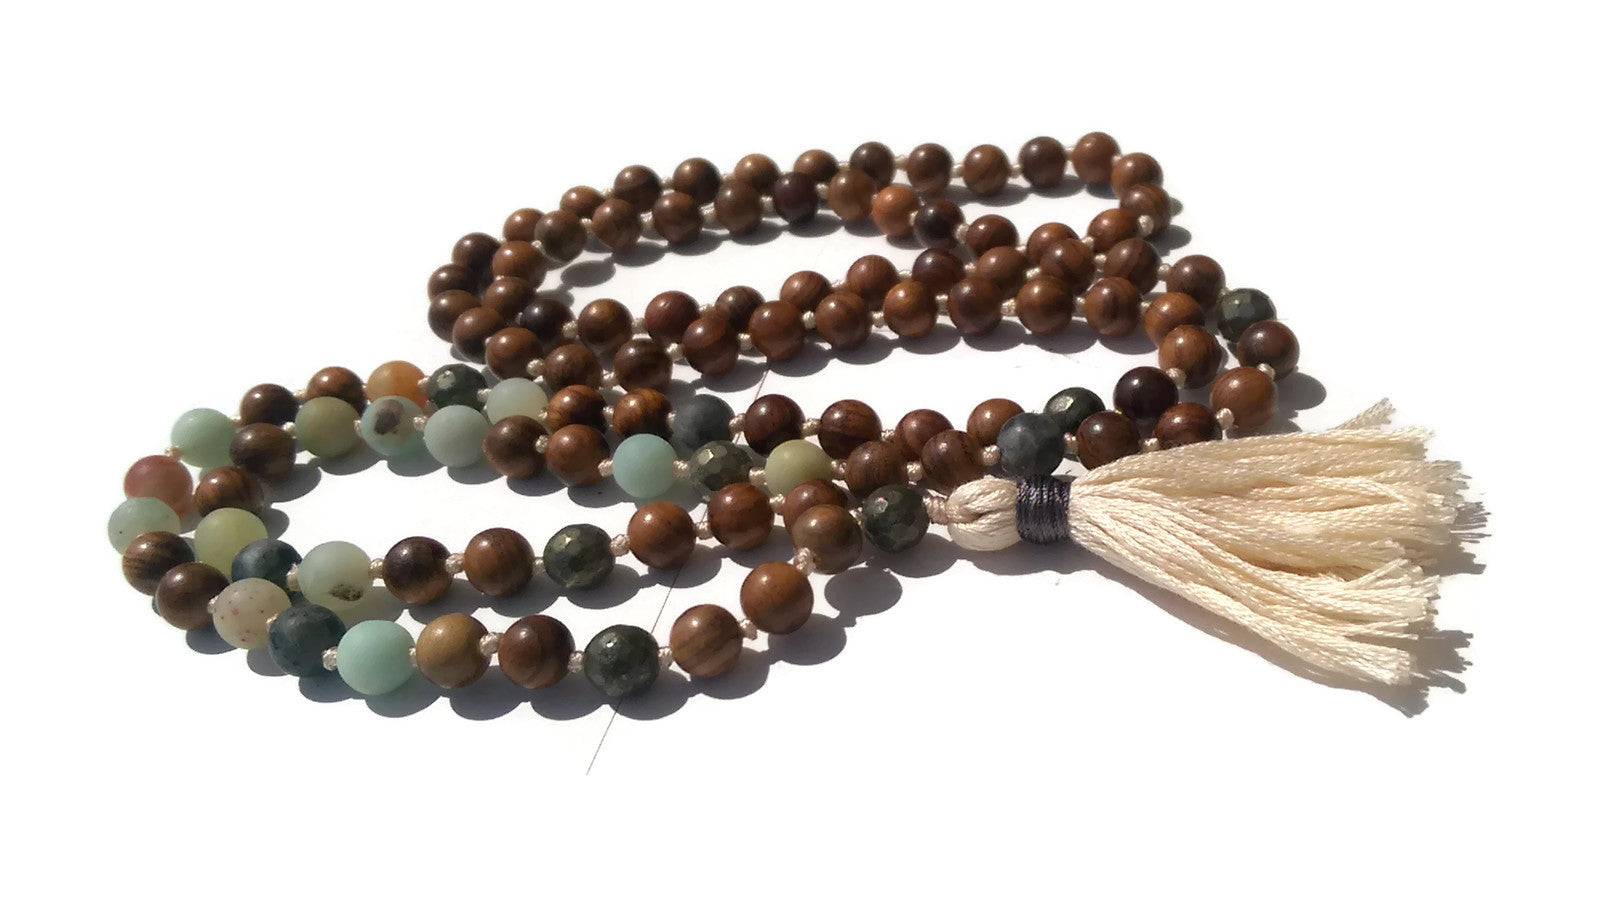 Pure Collection 8mm Pear Wood Amazonite Labradorite Pyrite Traditional Hand Knotted 108 Bead Meditation Mala Necklace Heart Chakra Yoga